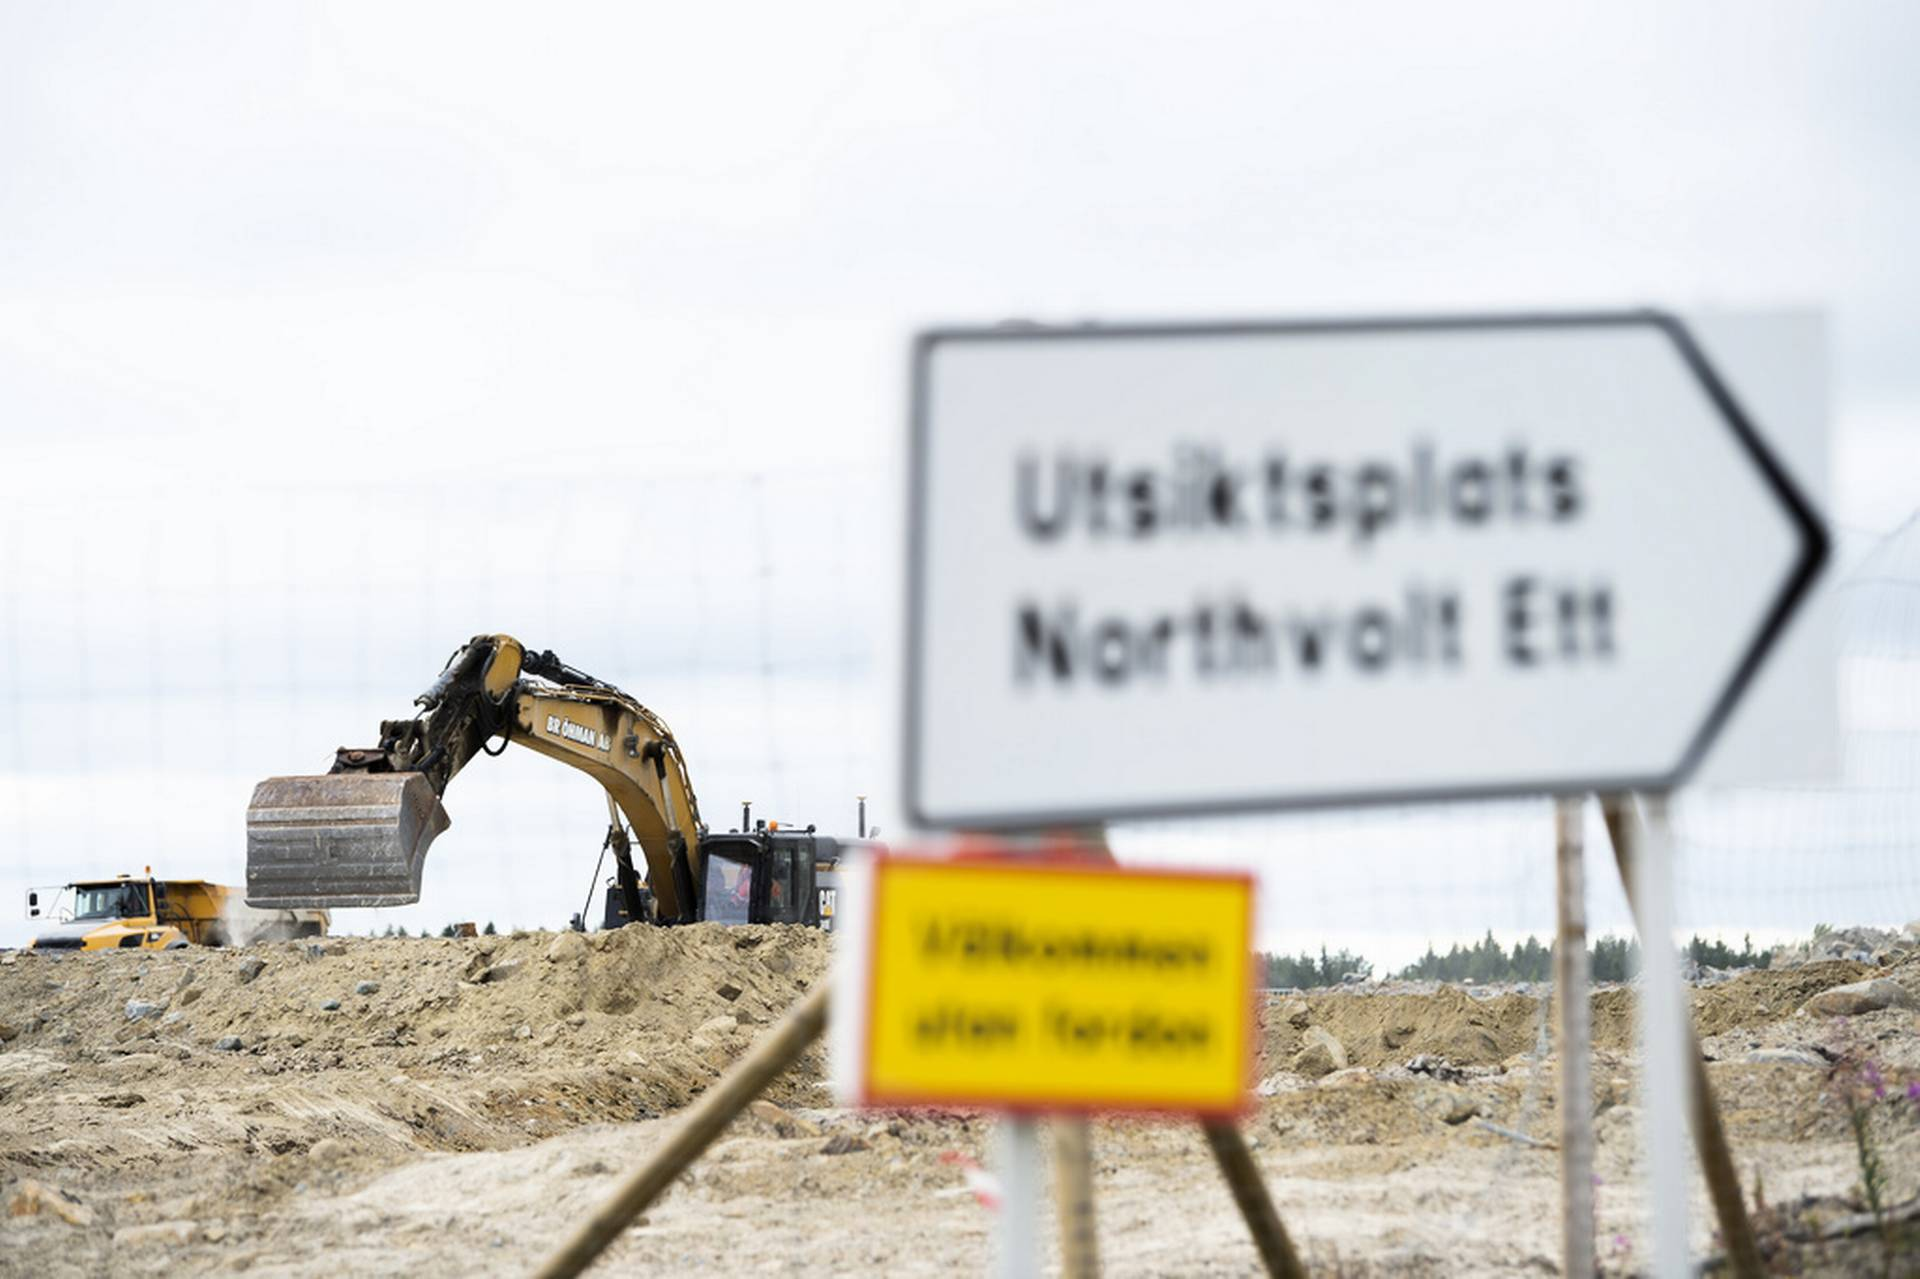 After Northvolt's progress – in a hurry with housing in northern Sweden